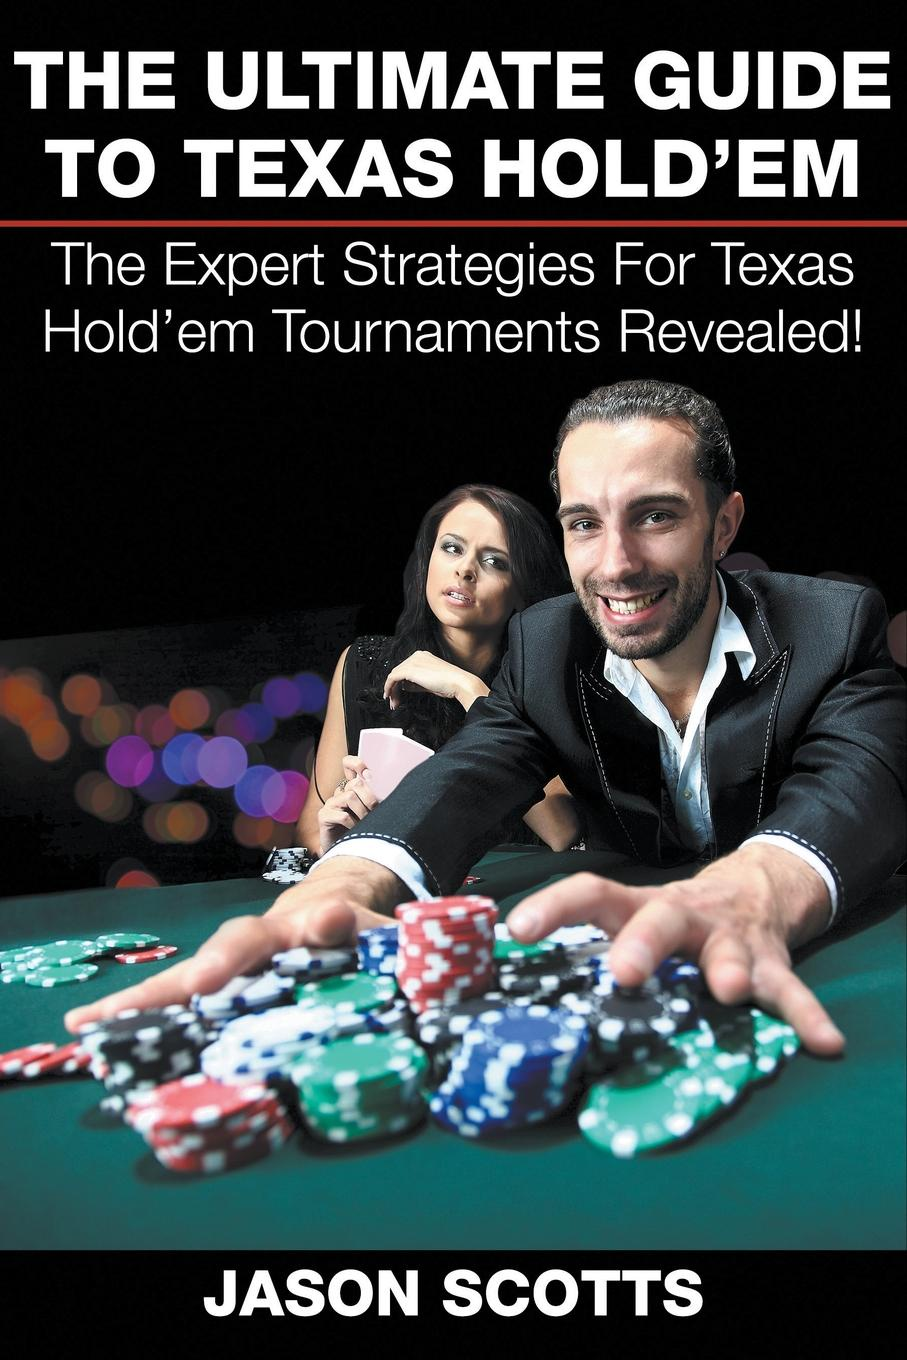 Jason Scotts The Ultimate Guide To Texas Hold'em. The Expert Strategies For Texas Hold'em Tournaments Revealed! dana muir m a manager s guide to employment law how to protect your company and yourself